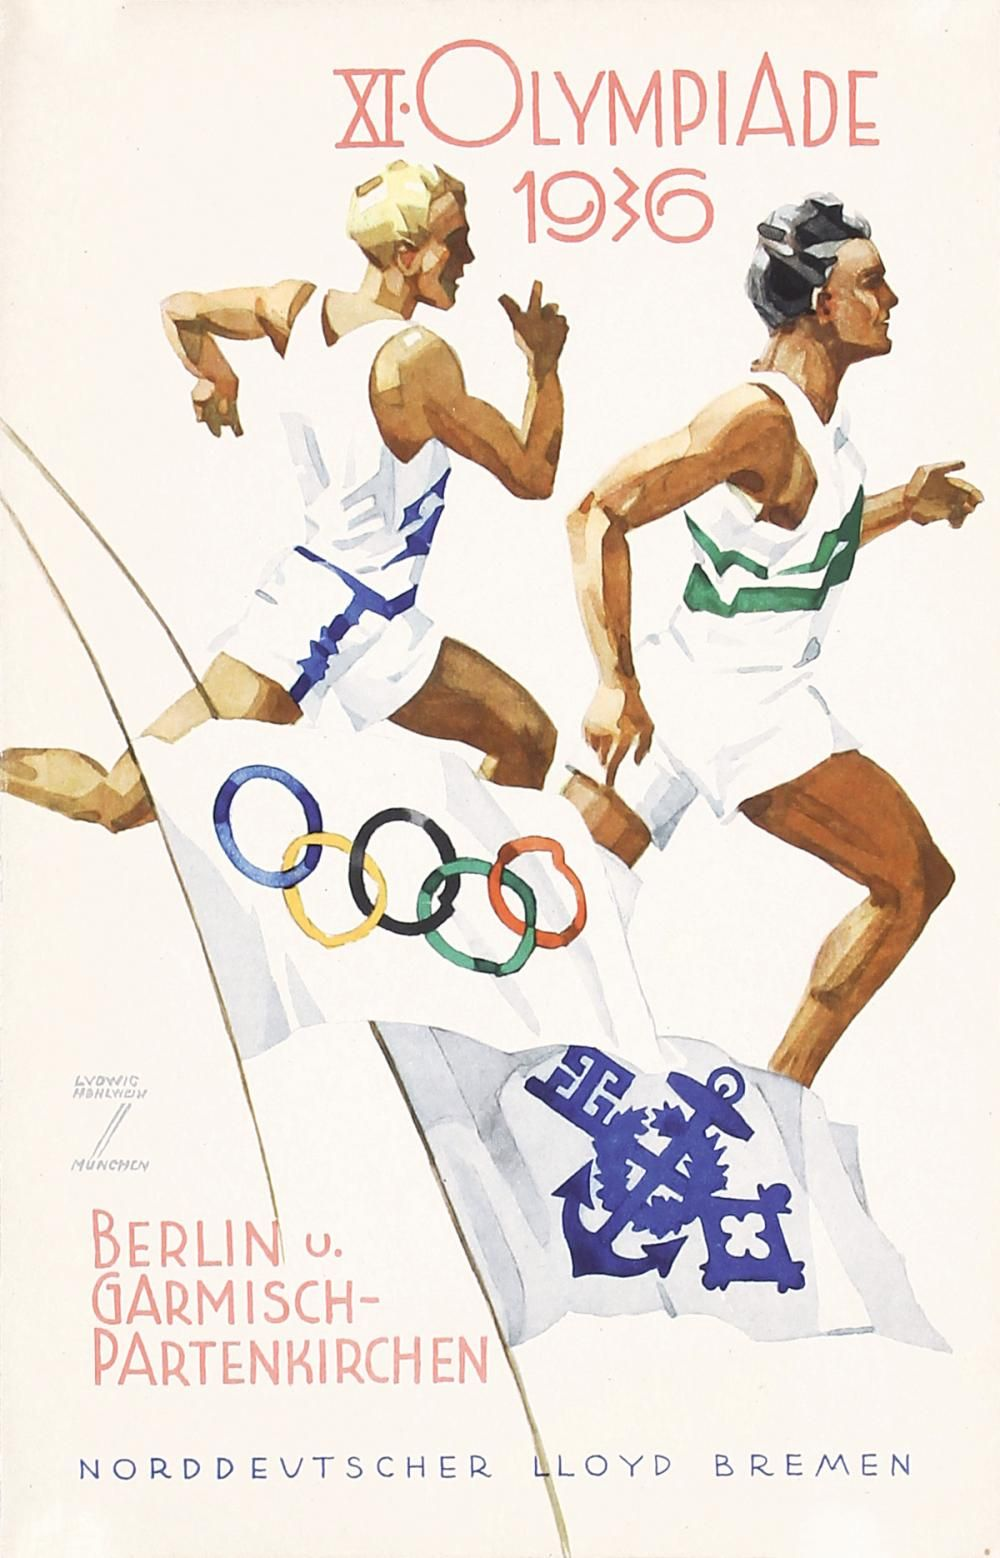 Artist Hohlwein Ludwig 1874 1949 Olympiade Menu Print 2 Brochures Technique Offset 1936 Olympische Spelen Vintage Posters Poster